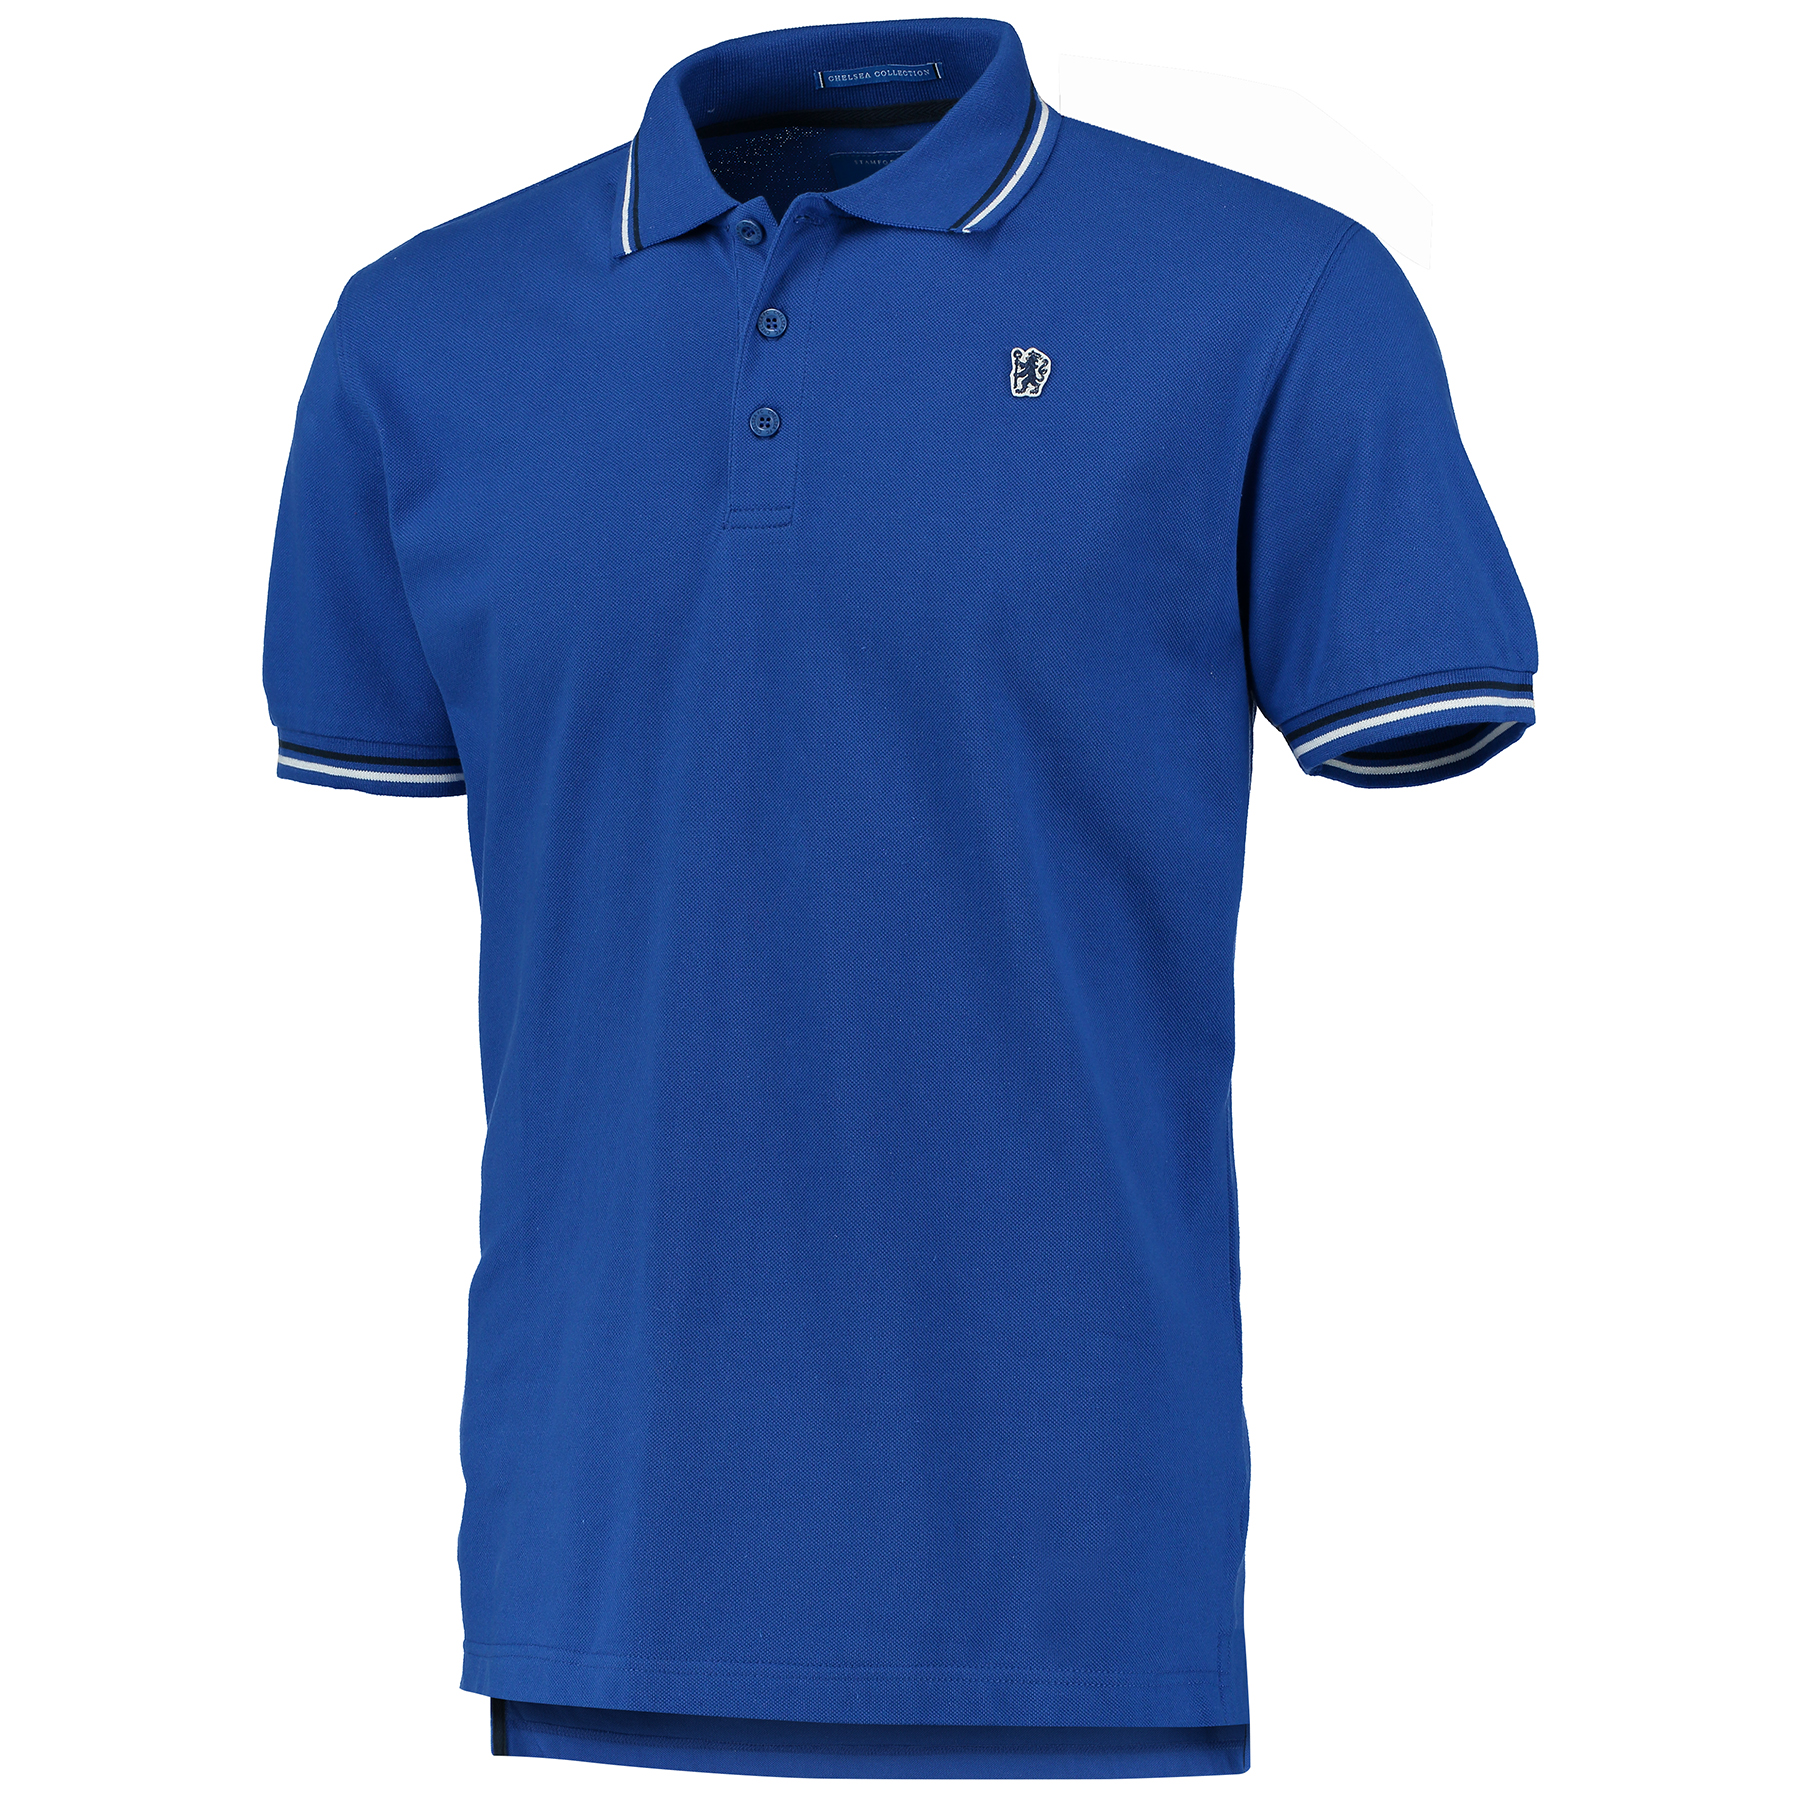 Chelsea Small Lion Polo Shirt - Royal - Mens   Woven lion badge. Tipped collar and cuffs. Woven back neck label. 3 x branded buttons. 100% Cotton Pique. Machine washable.